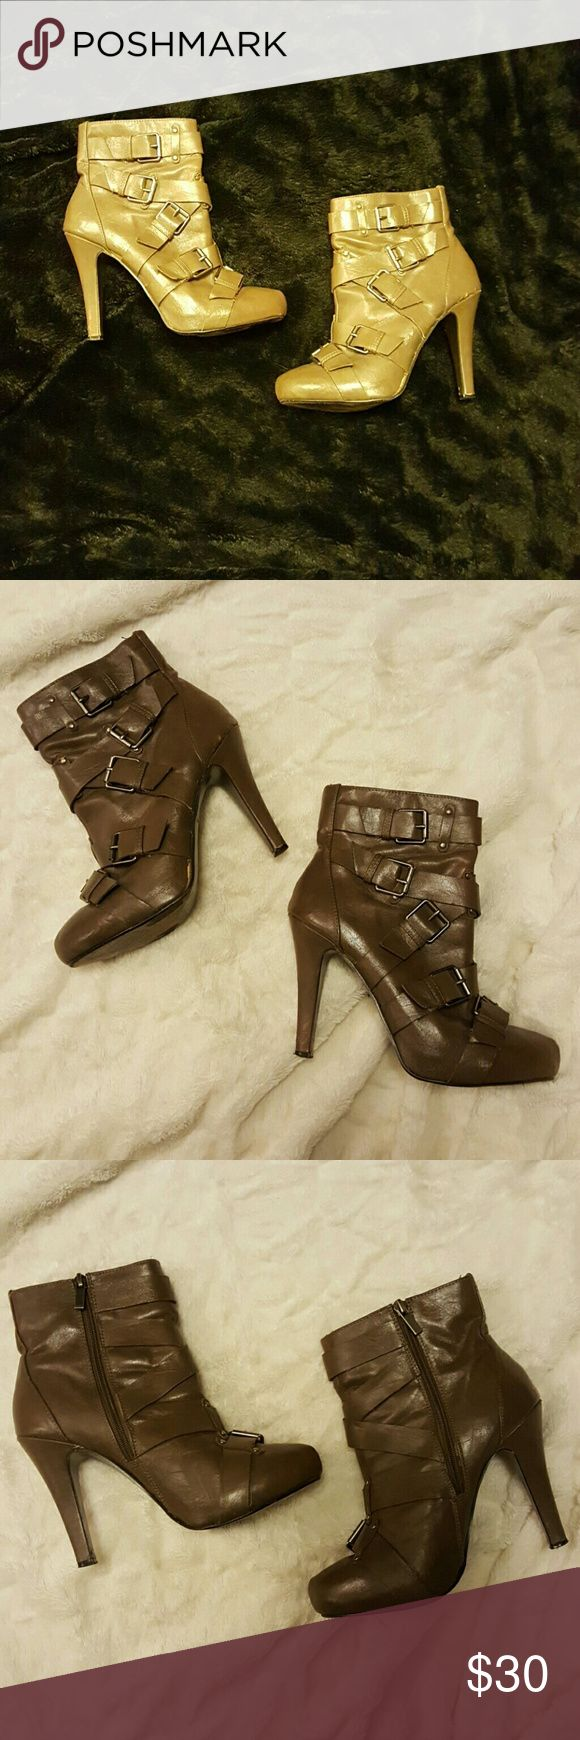 "FINAL SALE 📣🔖Sexy Bootie w Buckles 😘 Super fly Taupe boots with Buckles! 💋Gently Used,  Aprox. a 4"" heel. 💖 Anne Michelle Shoes Ankle Boots & Booties"